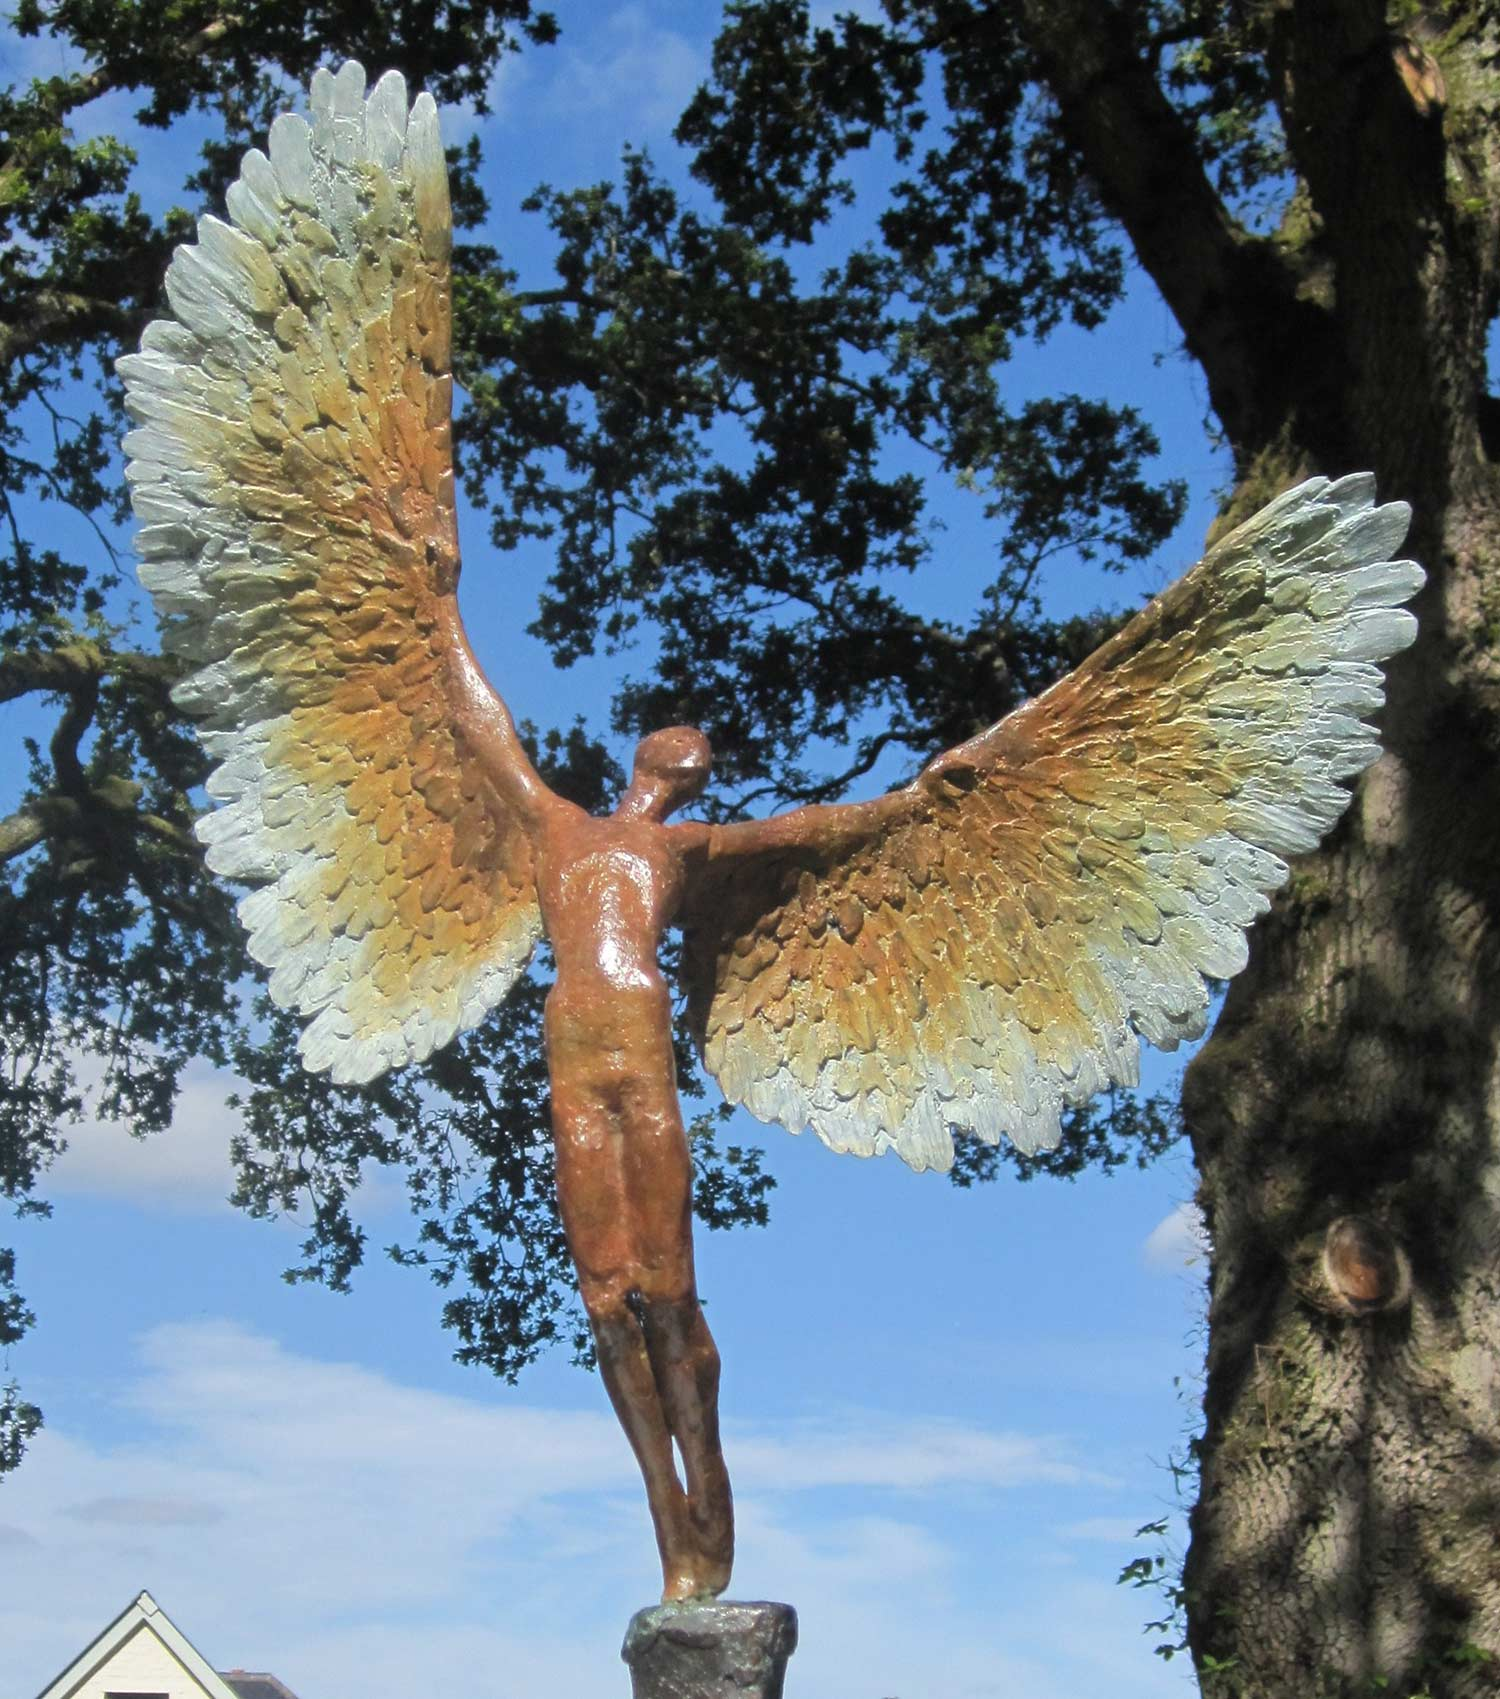 Icarus-VI bronze figurine sculpture for sale.